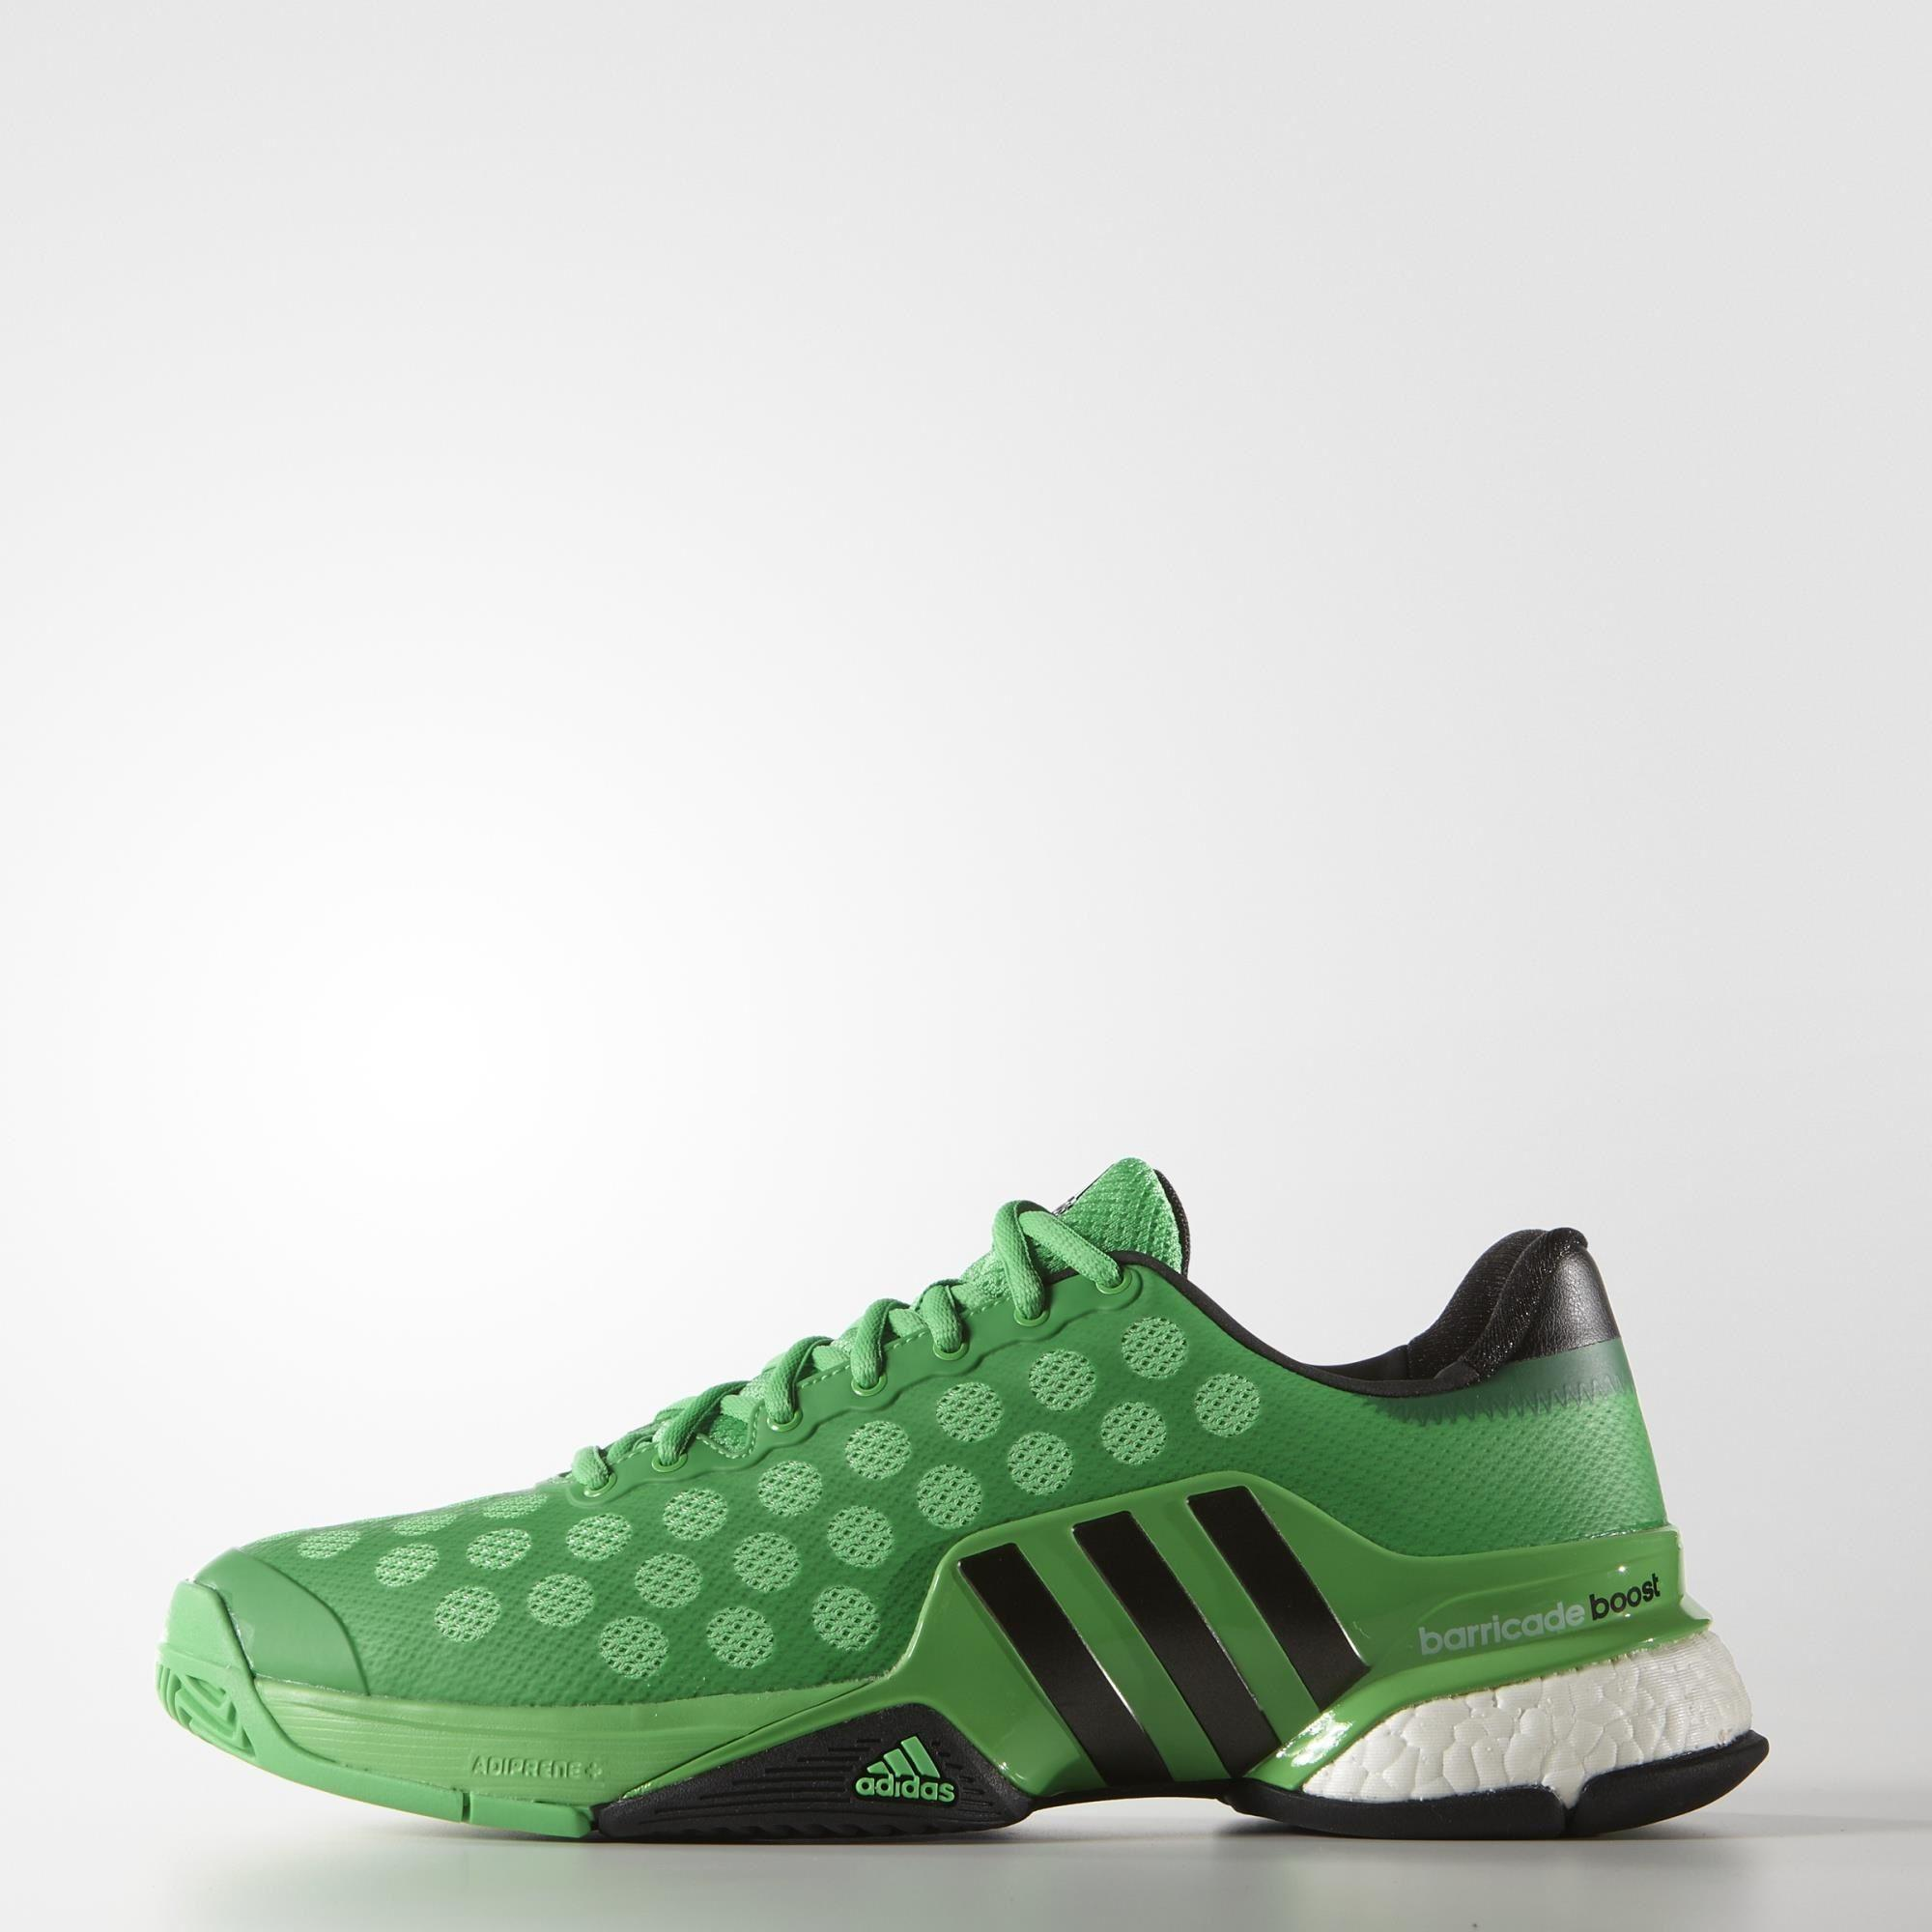 new product 06263 b91ee ... shopping adidas mens limited edition barricade boost 2015 tennis shoes  green black 5f204 7904a